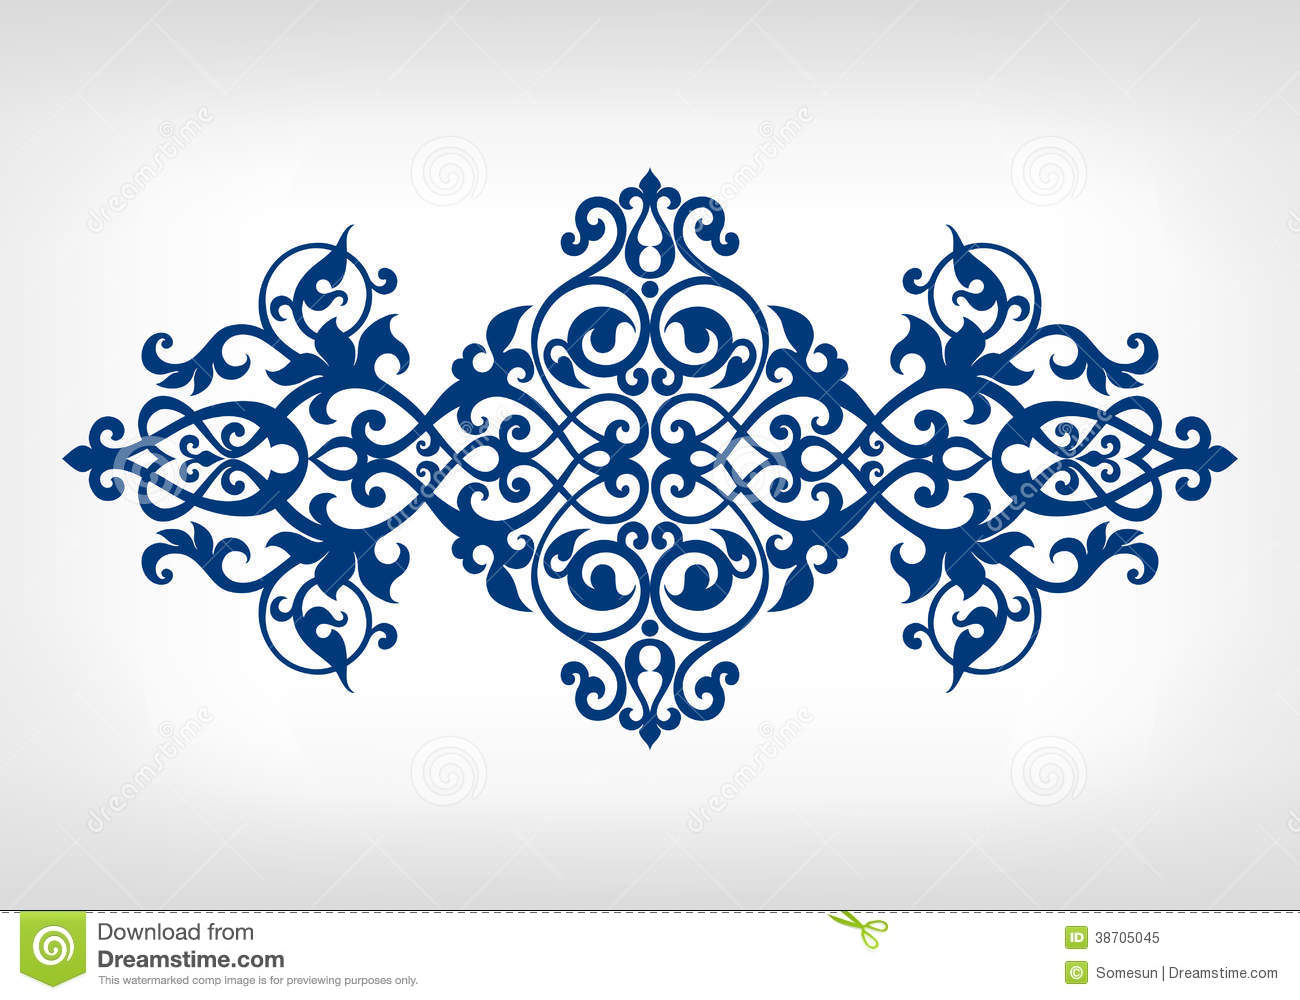 16 Gold Islamic Patterns Vector Images